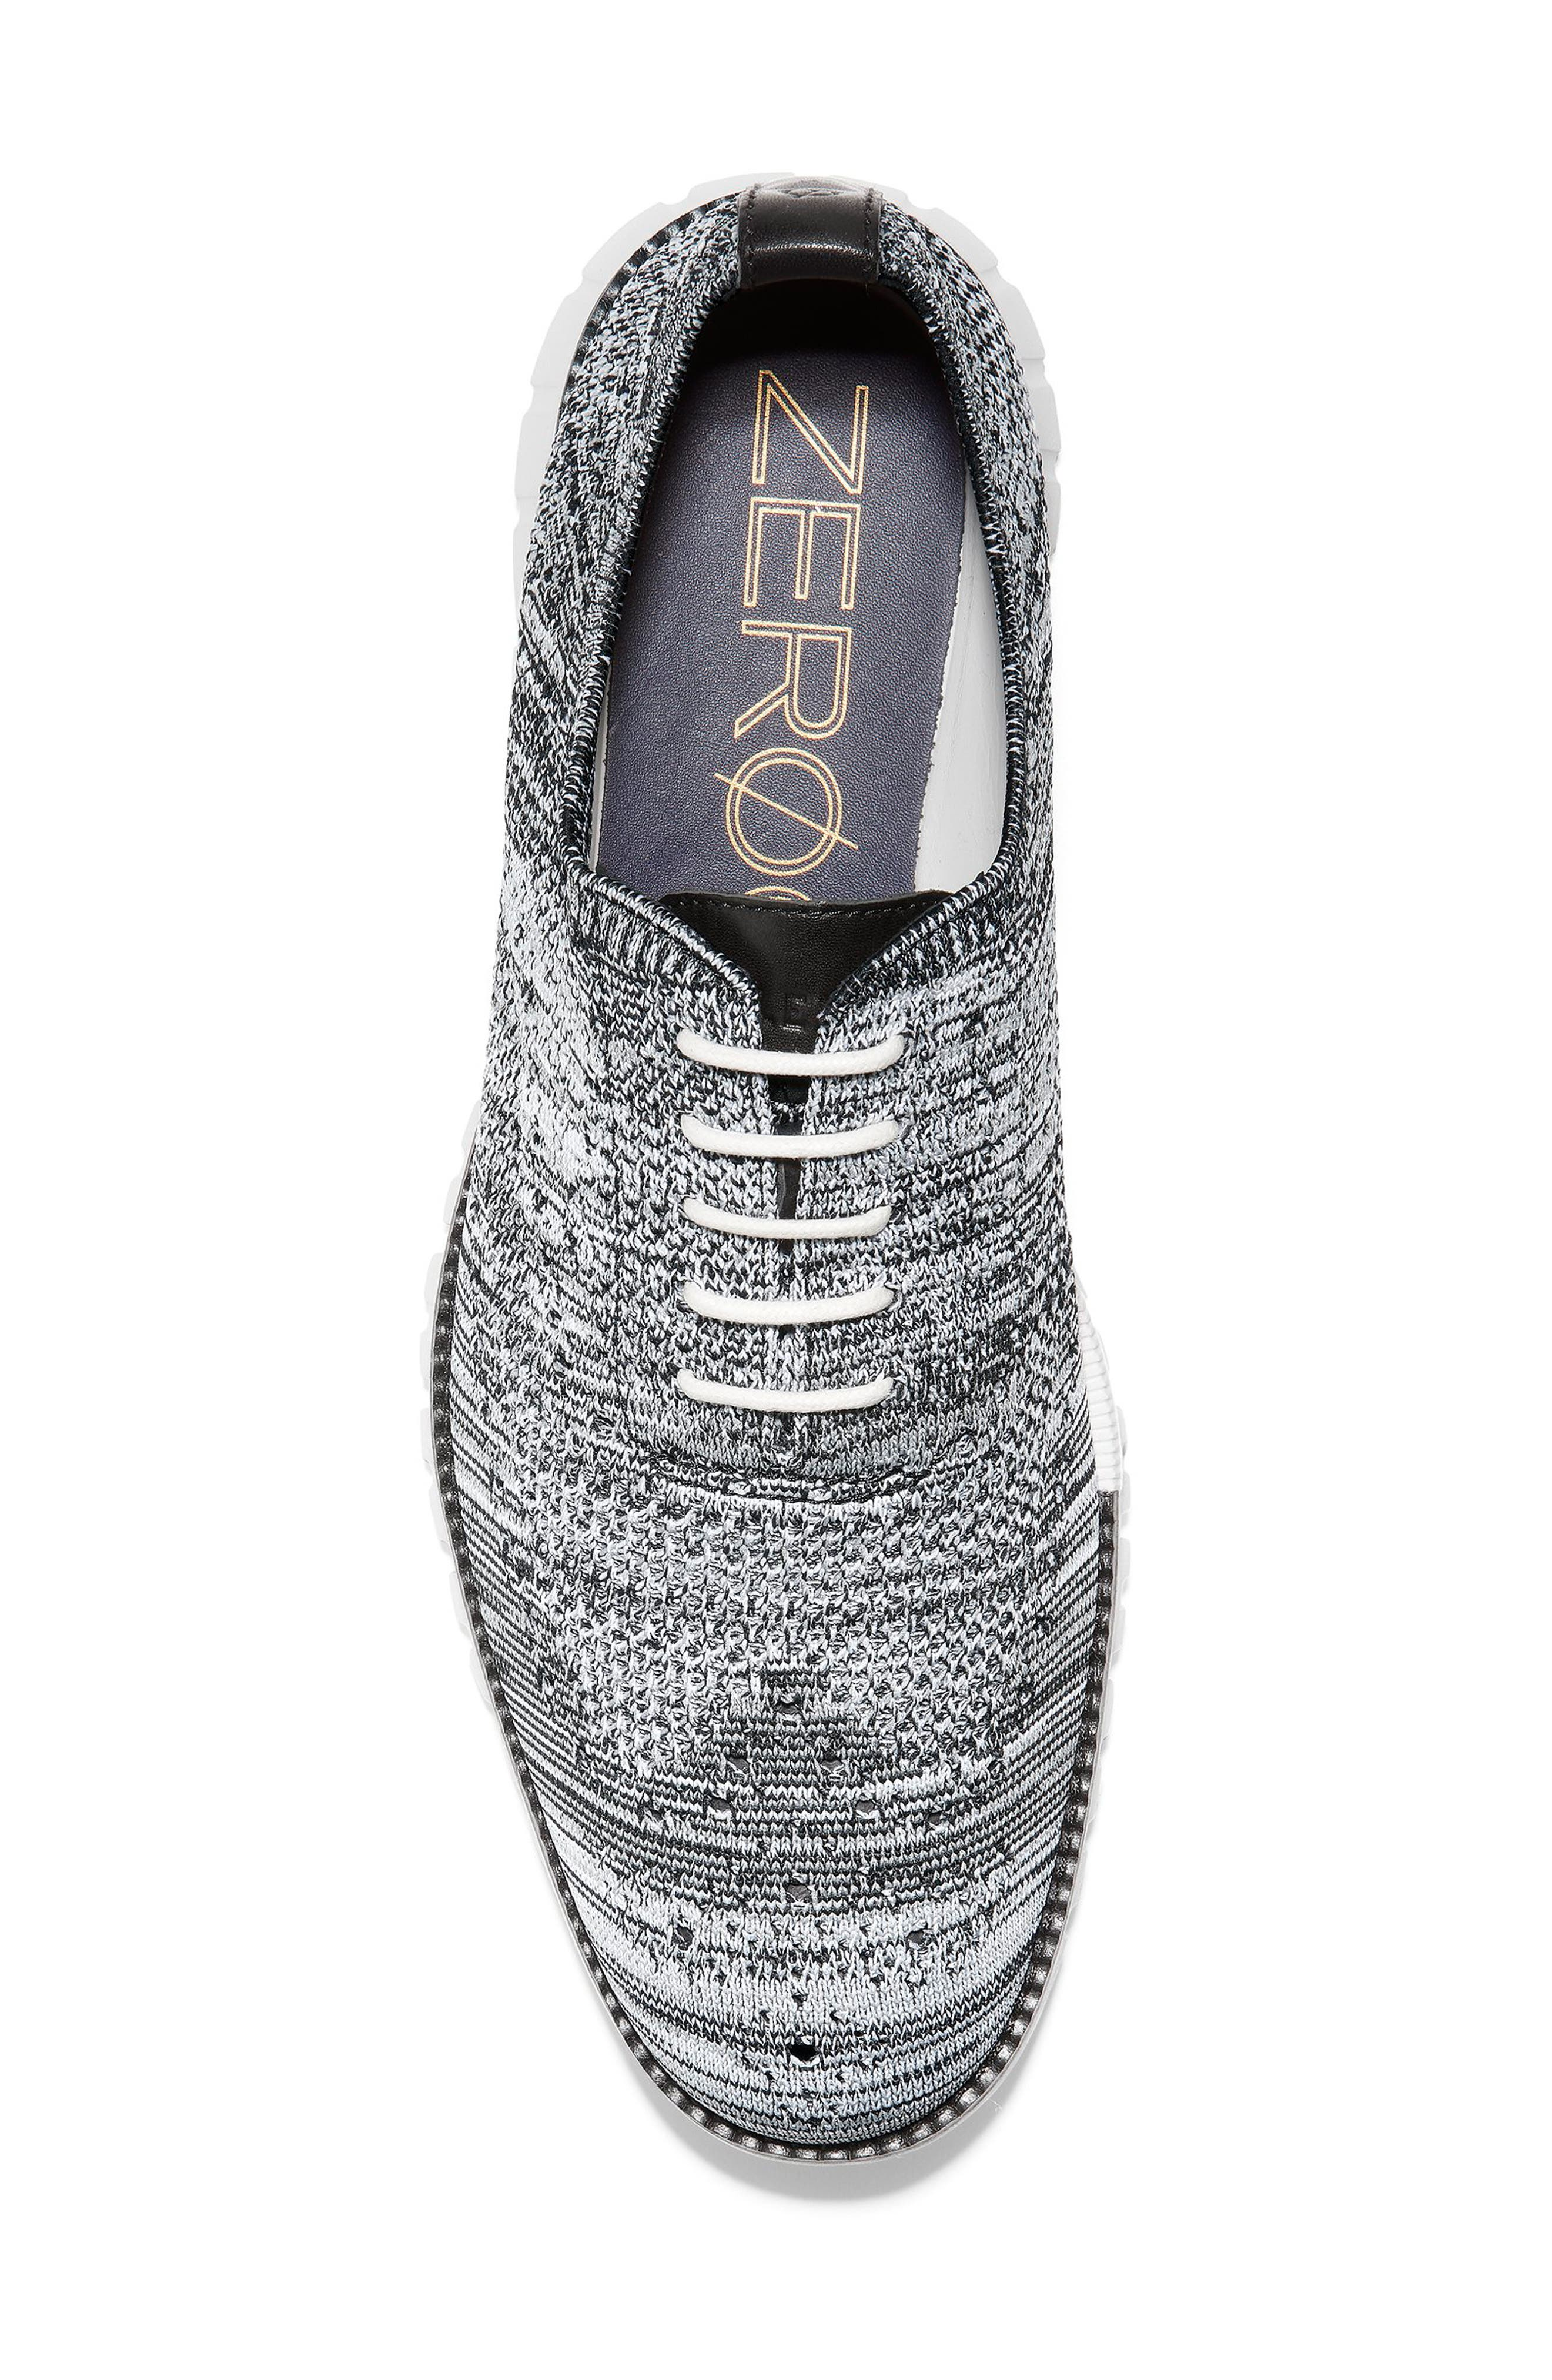 COLE HAAN, ZeroGrand Stitchlite Oxford, Alternate thumbnail 5, color, BLACK/ OPTIC WHITE/ SLEET KNIT